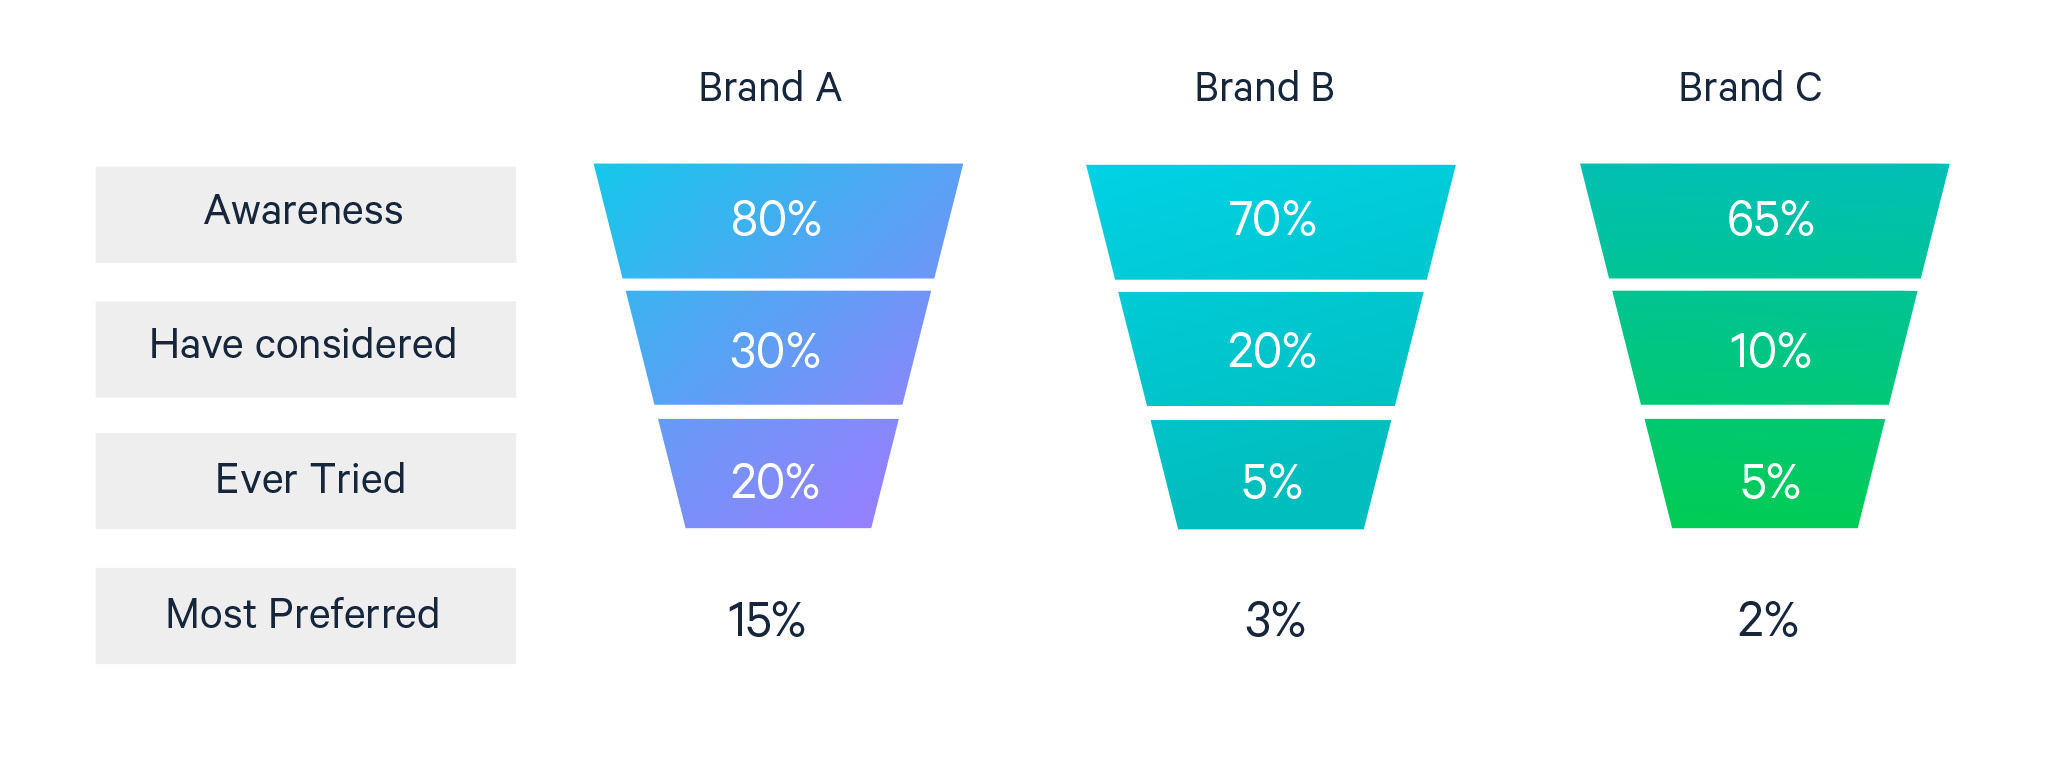 Depiction of a brand purchase funnel showing the comparison between Brand A, Brand B, and Brand C with Brand A leading the market in customer loyalty.